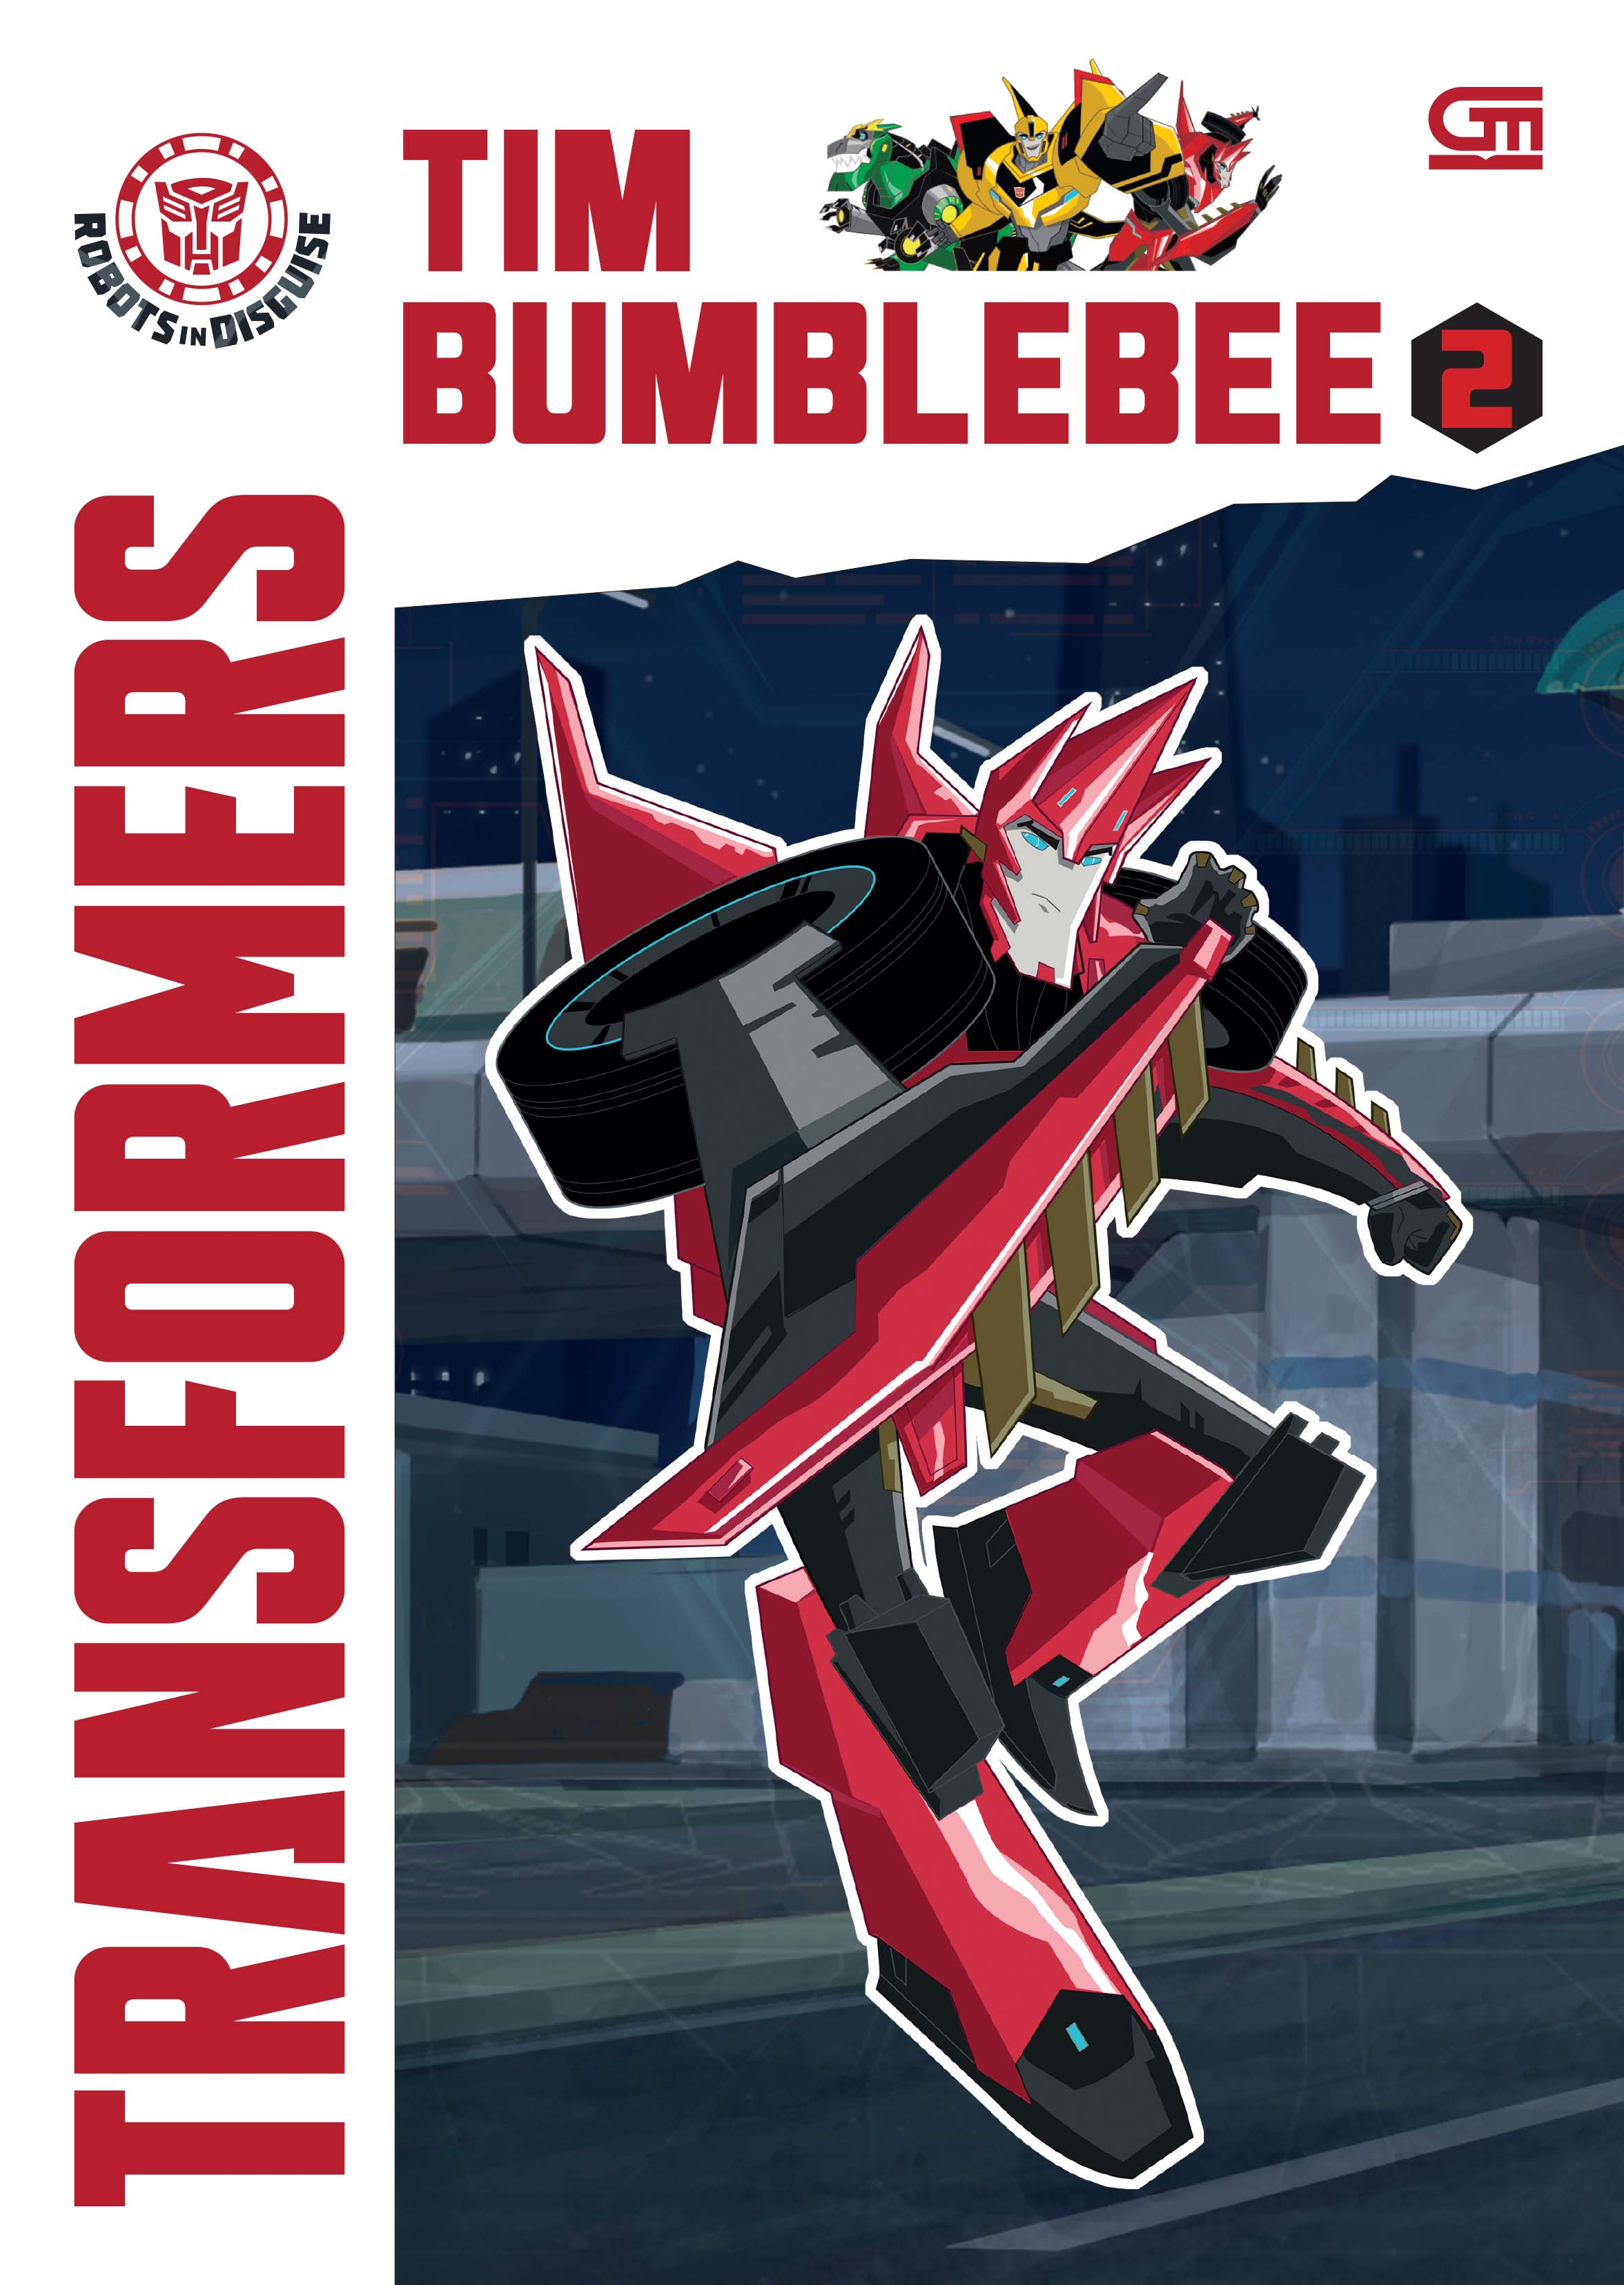 Transformers Robots in Disguise: Tim Bumblebee 2